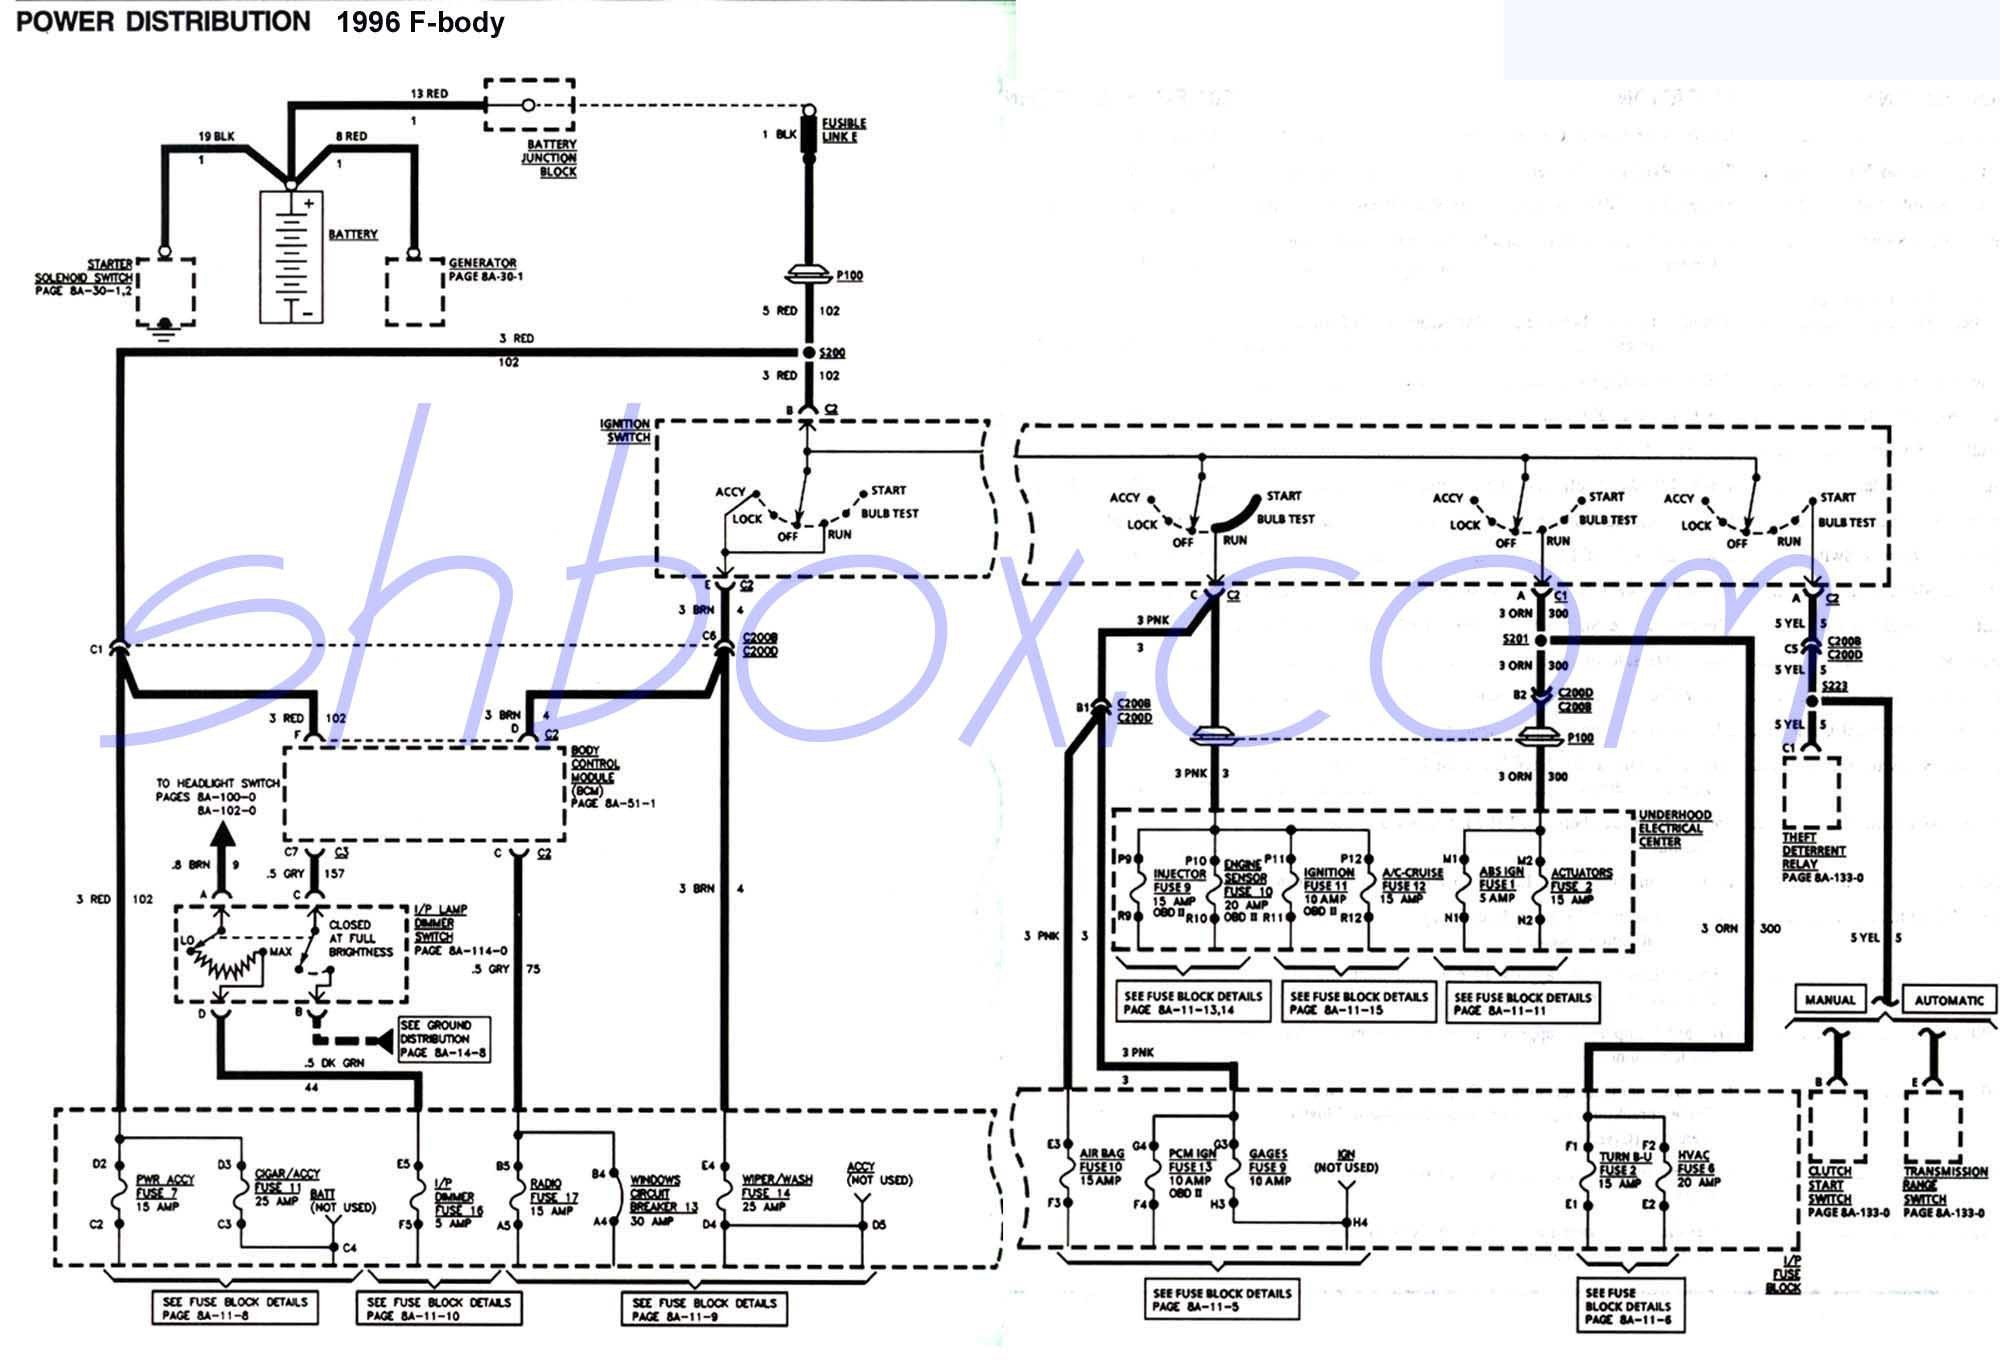 Car Electrical Wiring Diagram Awesome Ignition Wiring Diagram Diagram Of Car Electrical Wiring Diagram Auto Hoist Wiring Diagrams Cad 3 ton Hoist Wiring Diagram Wiring